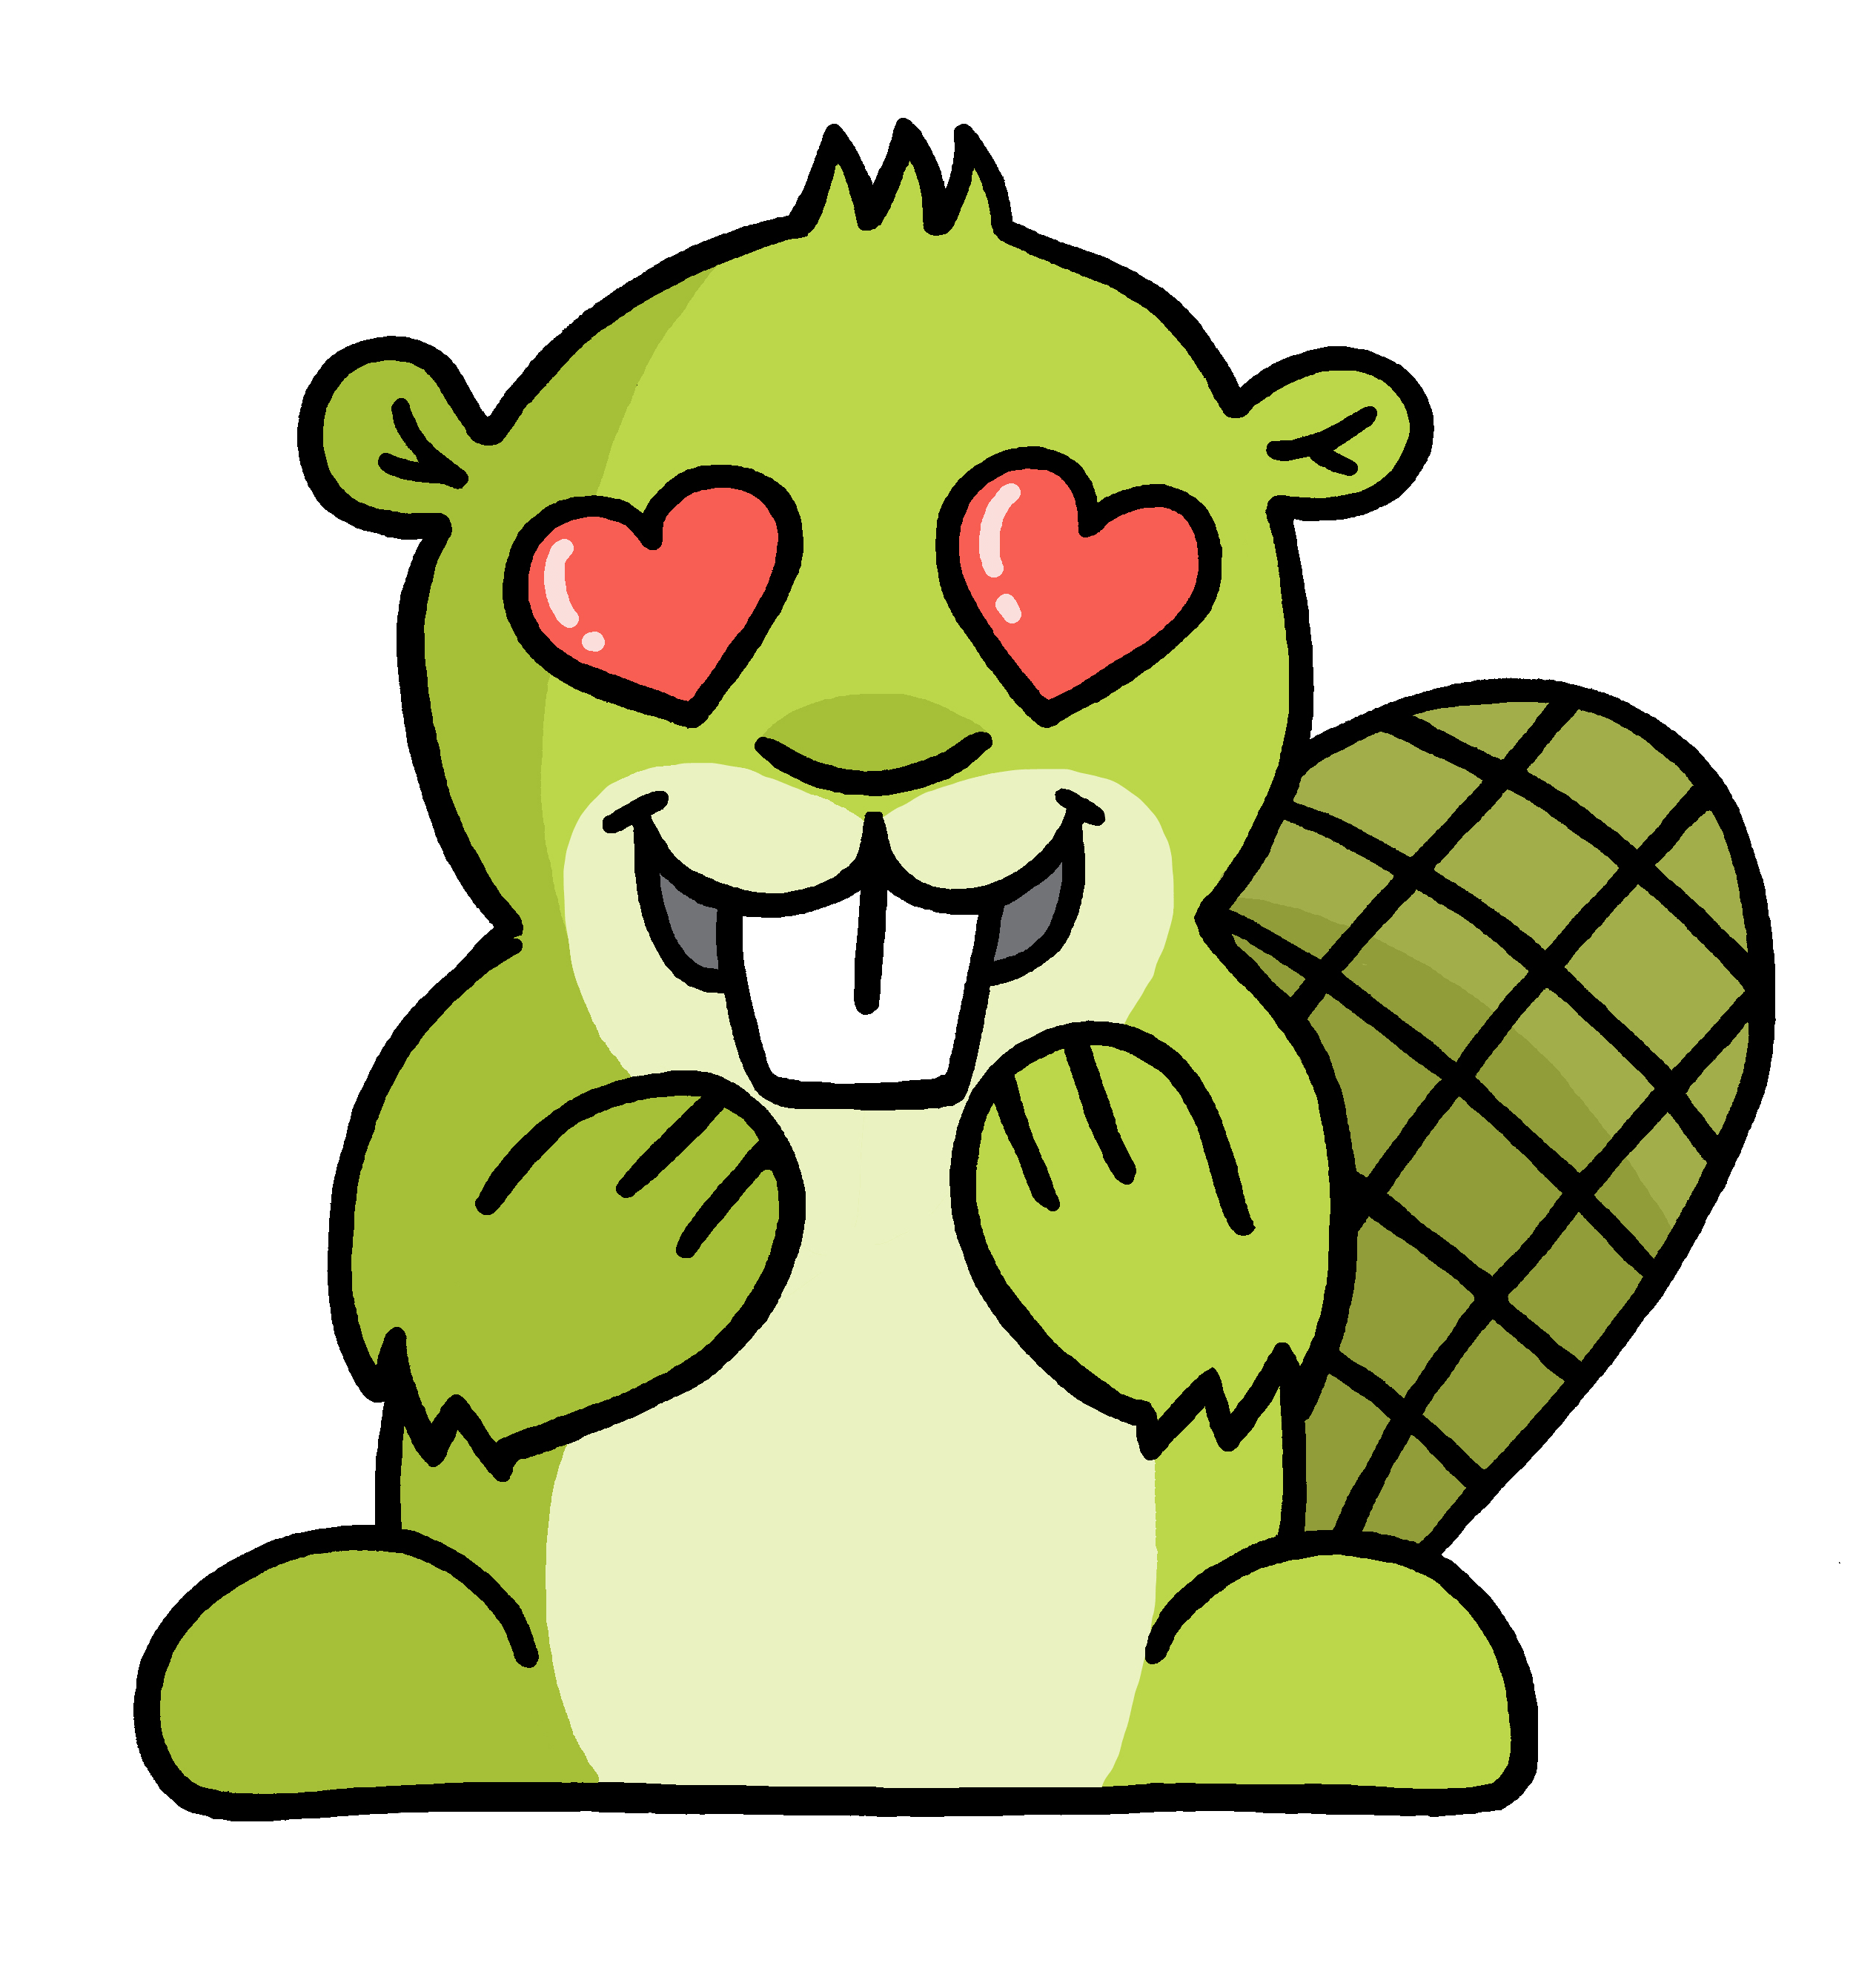 Hungry clipart transparent. Adsy png stickpng in